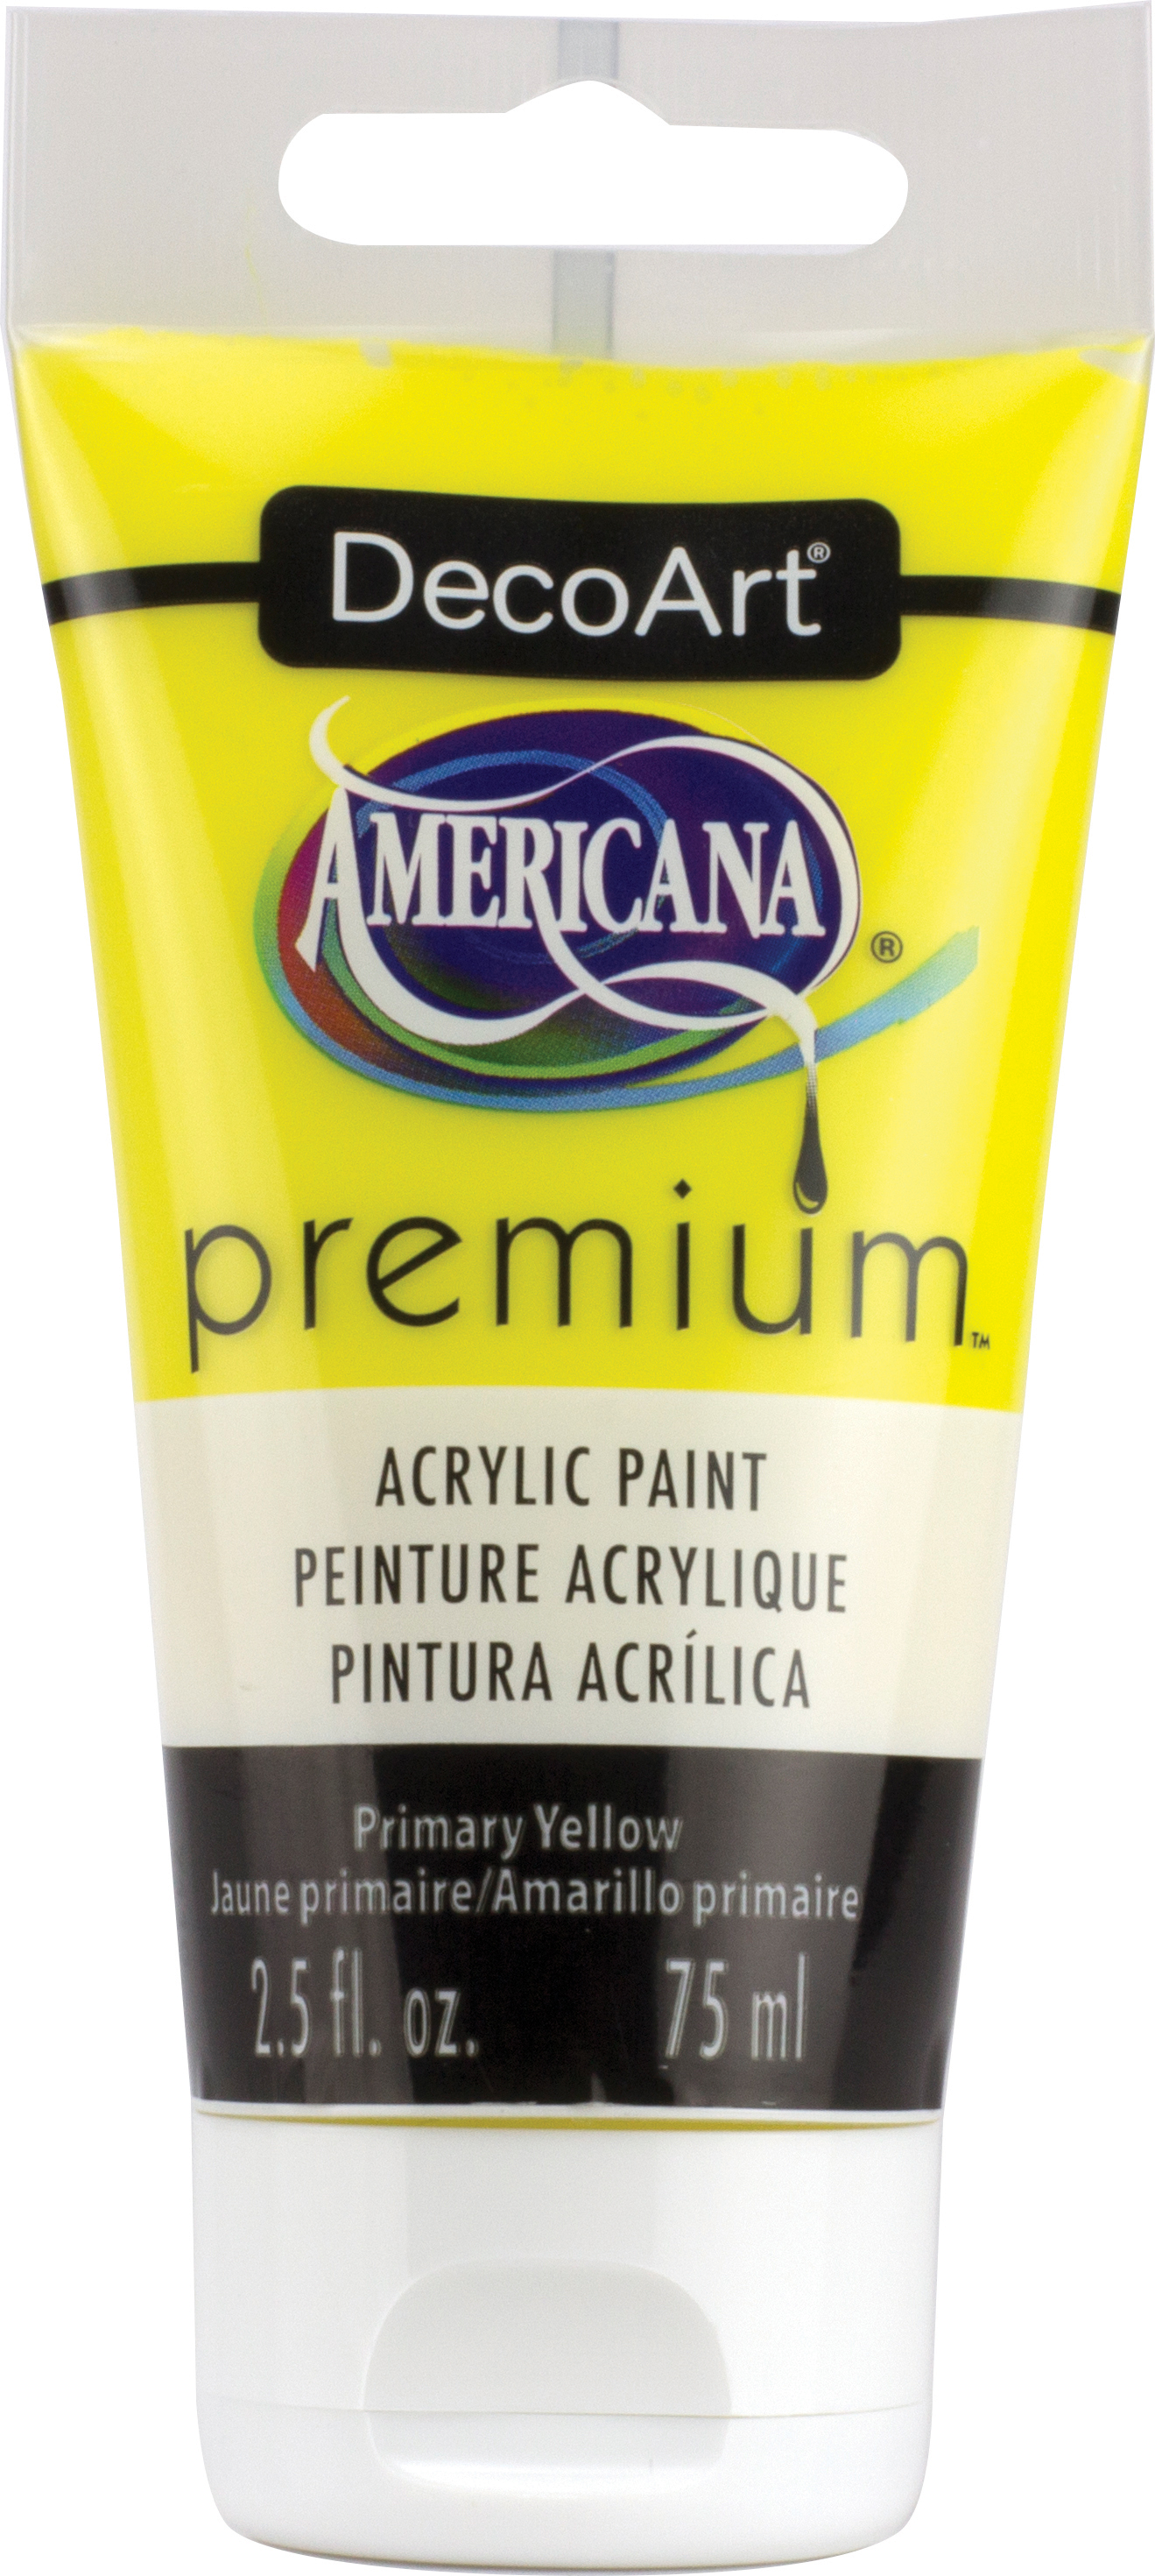 DecoArt Primary Yellow Americana Premium Acrylic Paint Tube 2.5oz